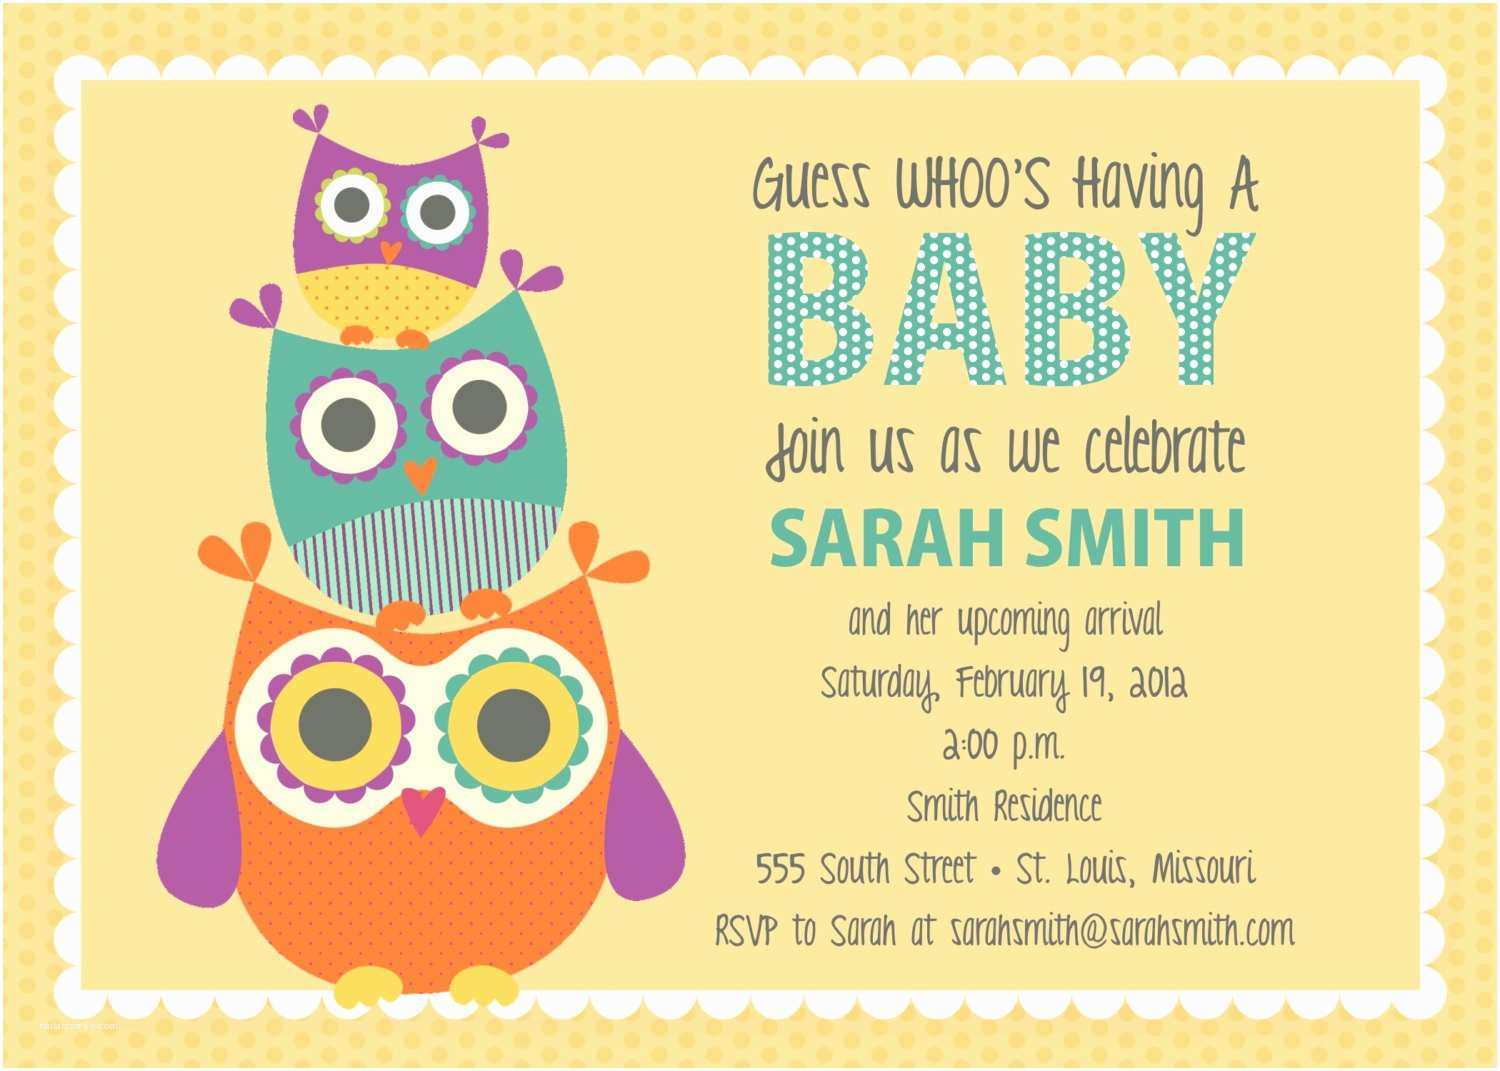 Funny Baby Shower Invitations Funny Baby Shower Invitations Gallery Baby Shower